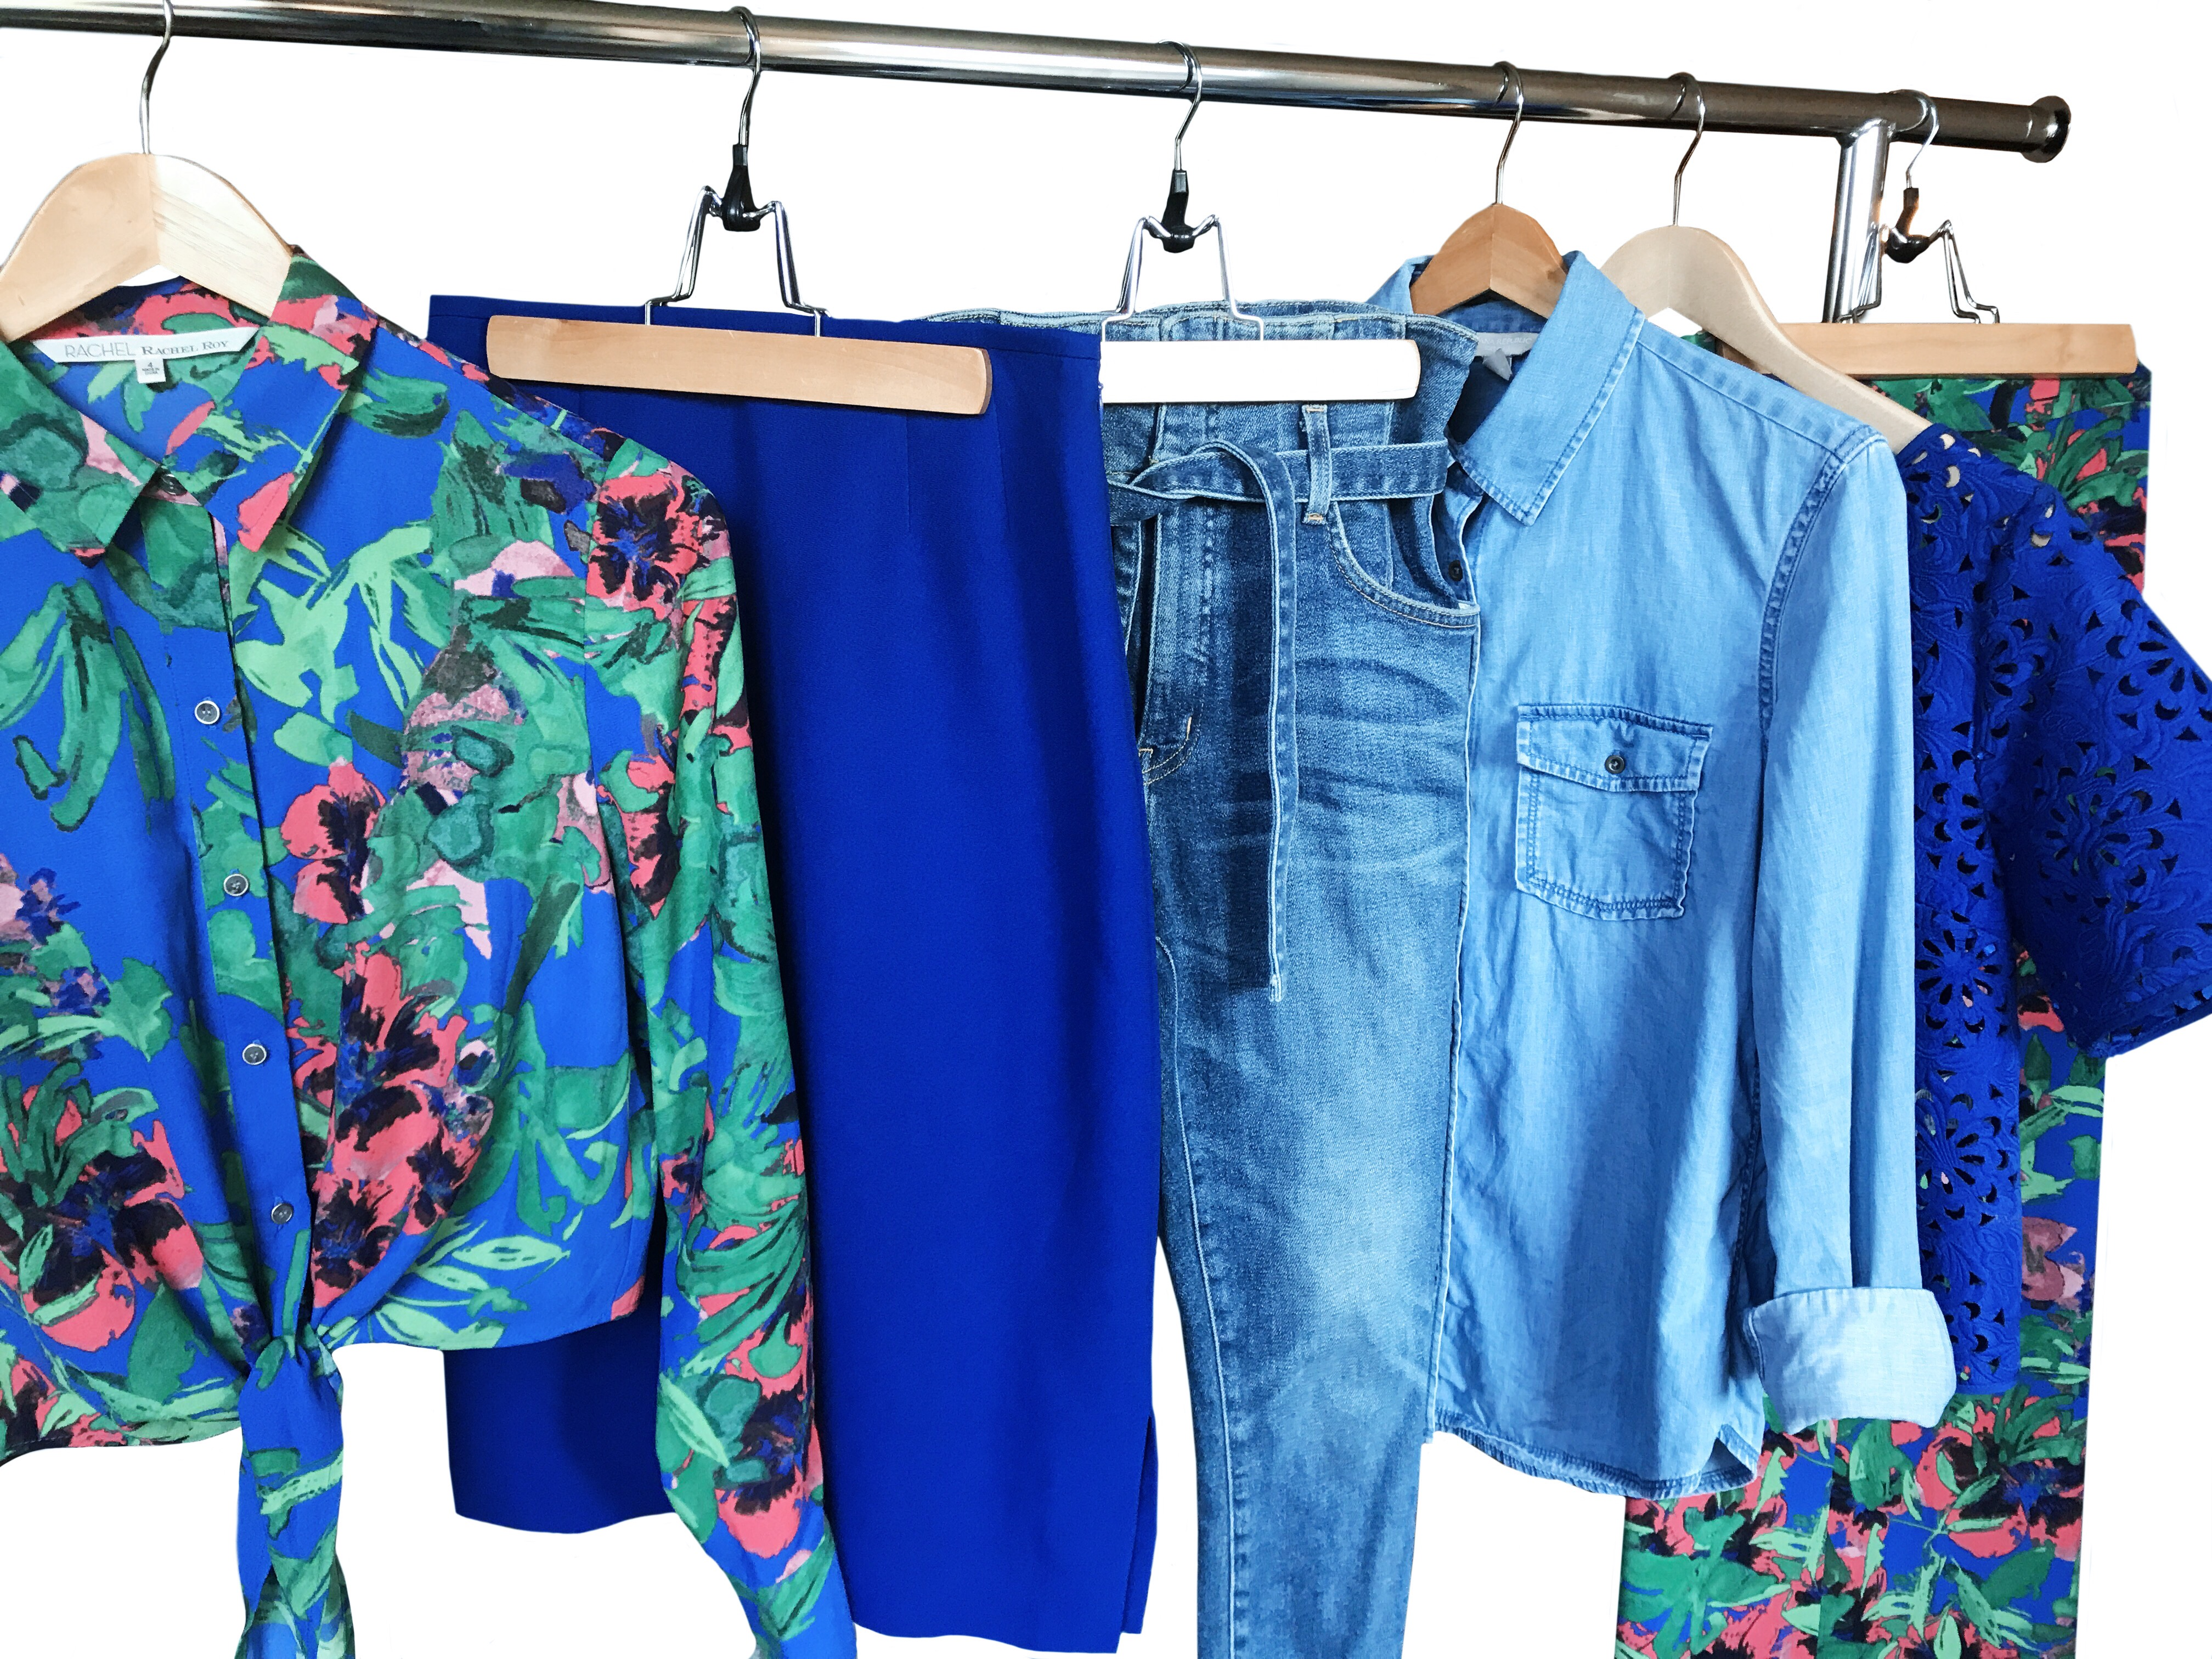 Sales_of_Style_Clothes_That_Transition_From_Summer_to_Fall